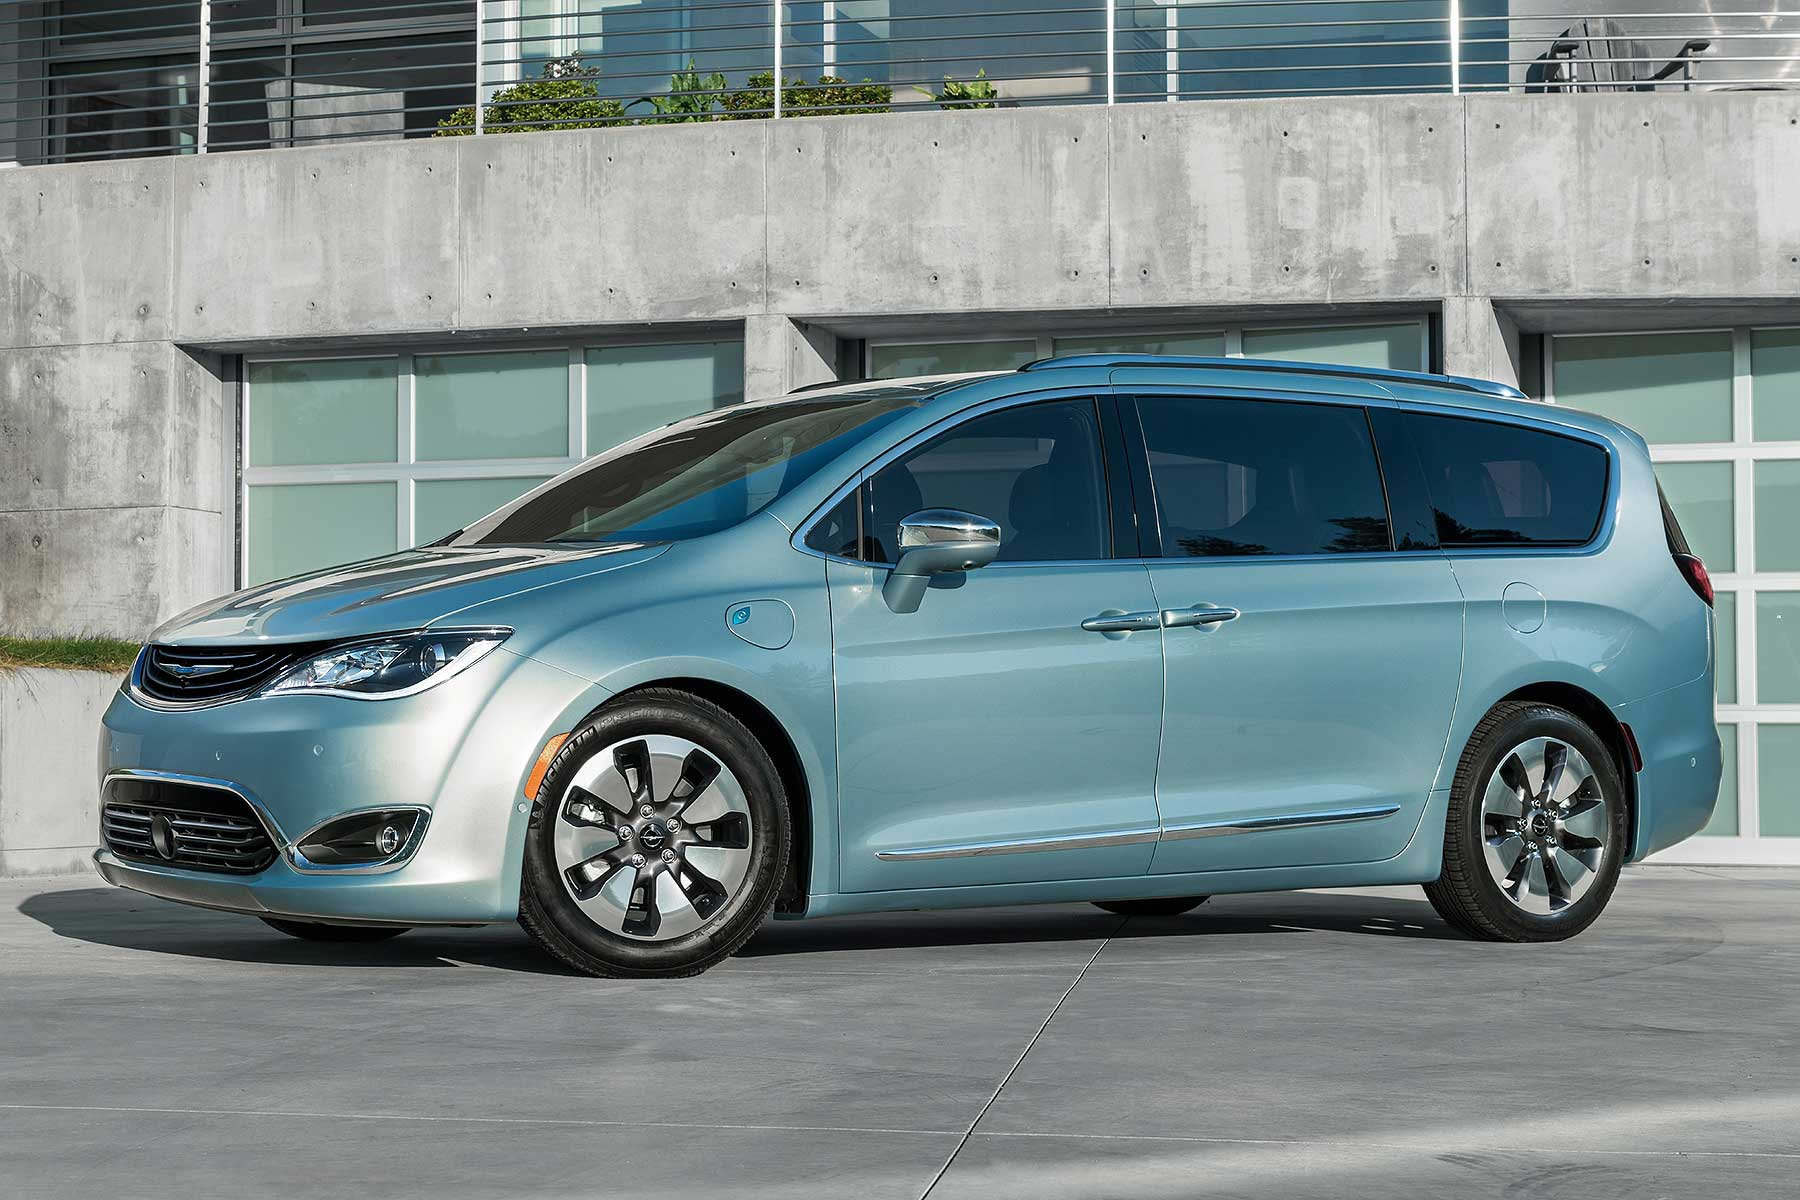 Google Car Self Driving Tech To Be Tested In Chrysler Pacifica Mpv